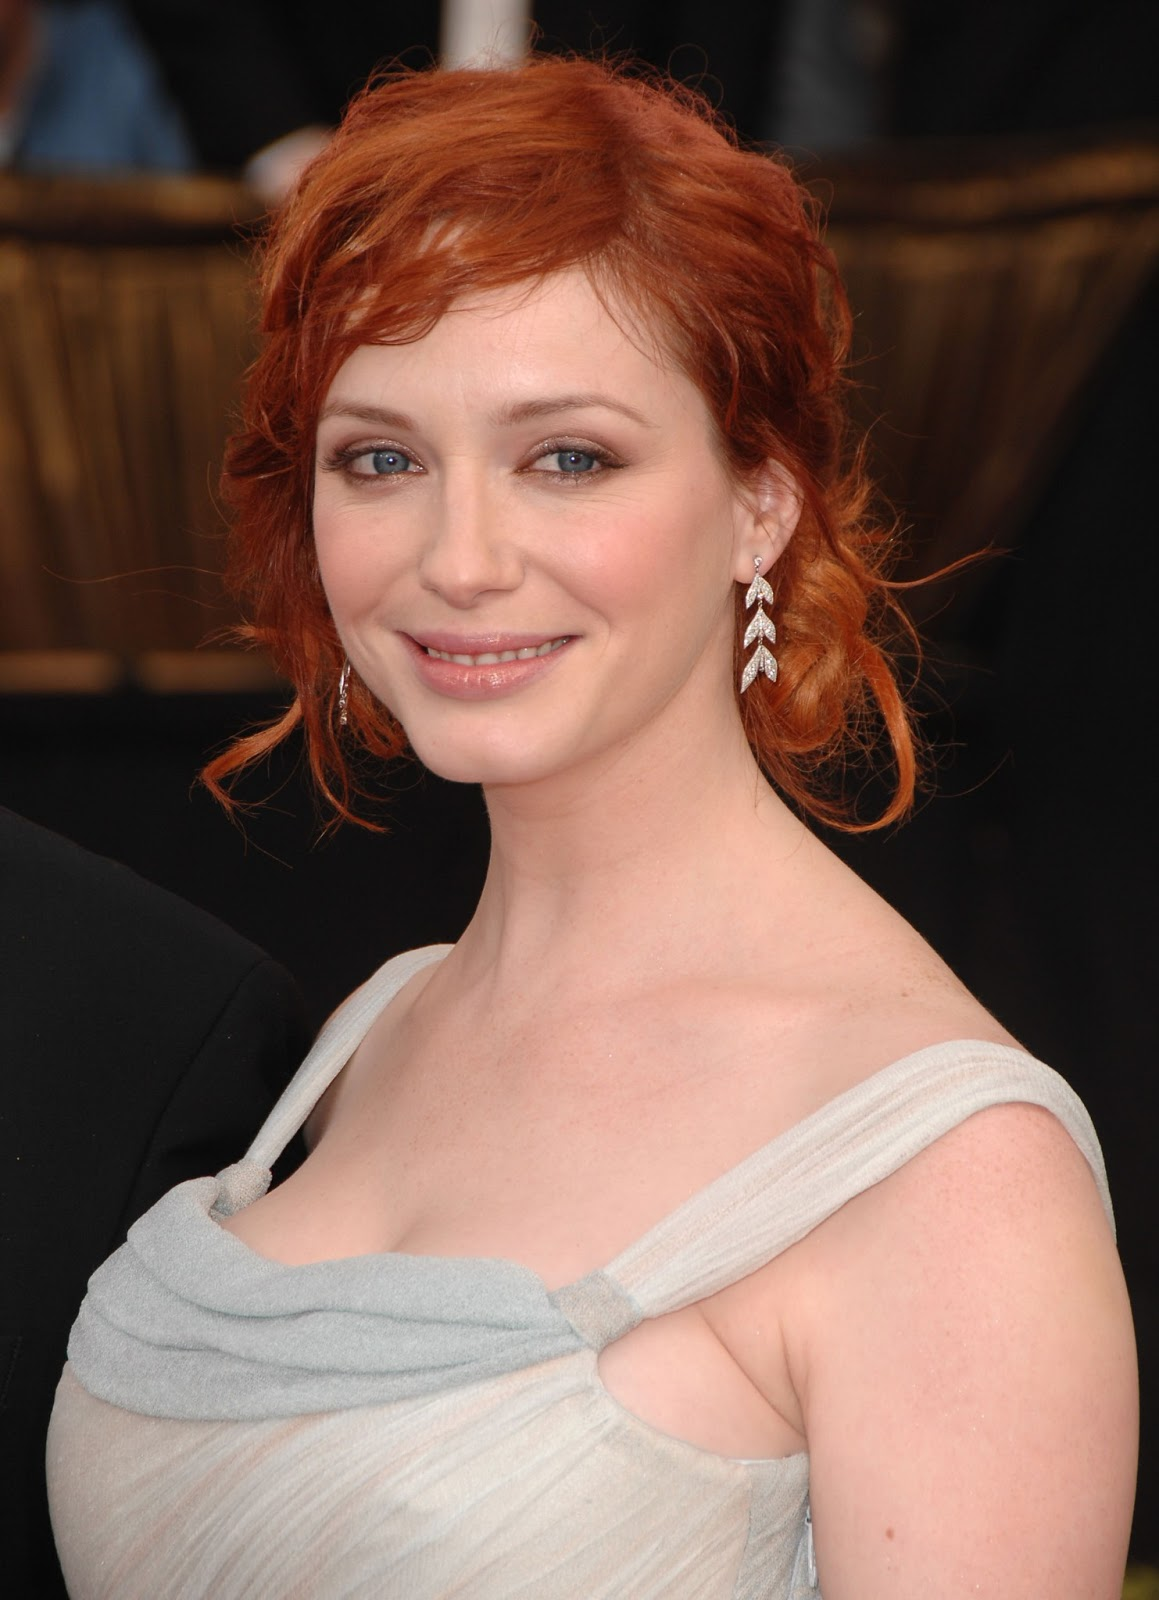 christina hendricks heavy chest the hottes. Black Bedroom Furniture Sets. Home Design Ideas